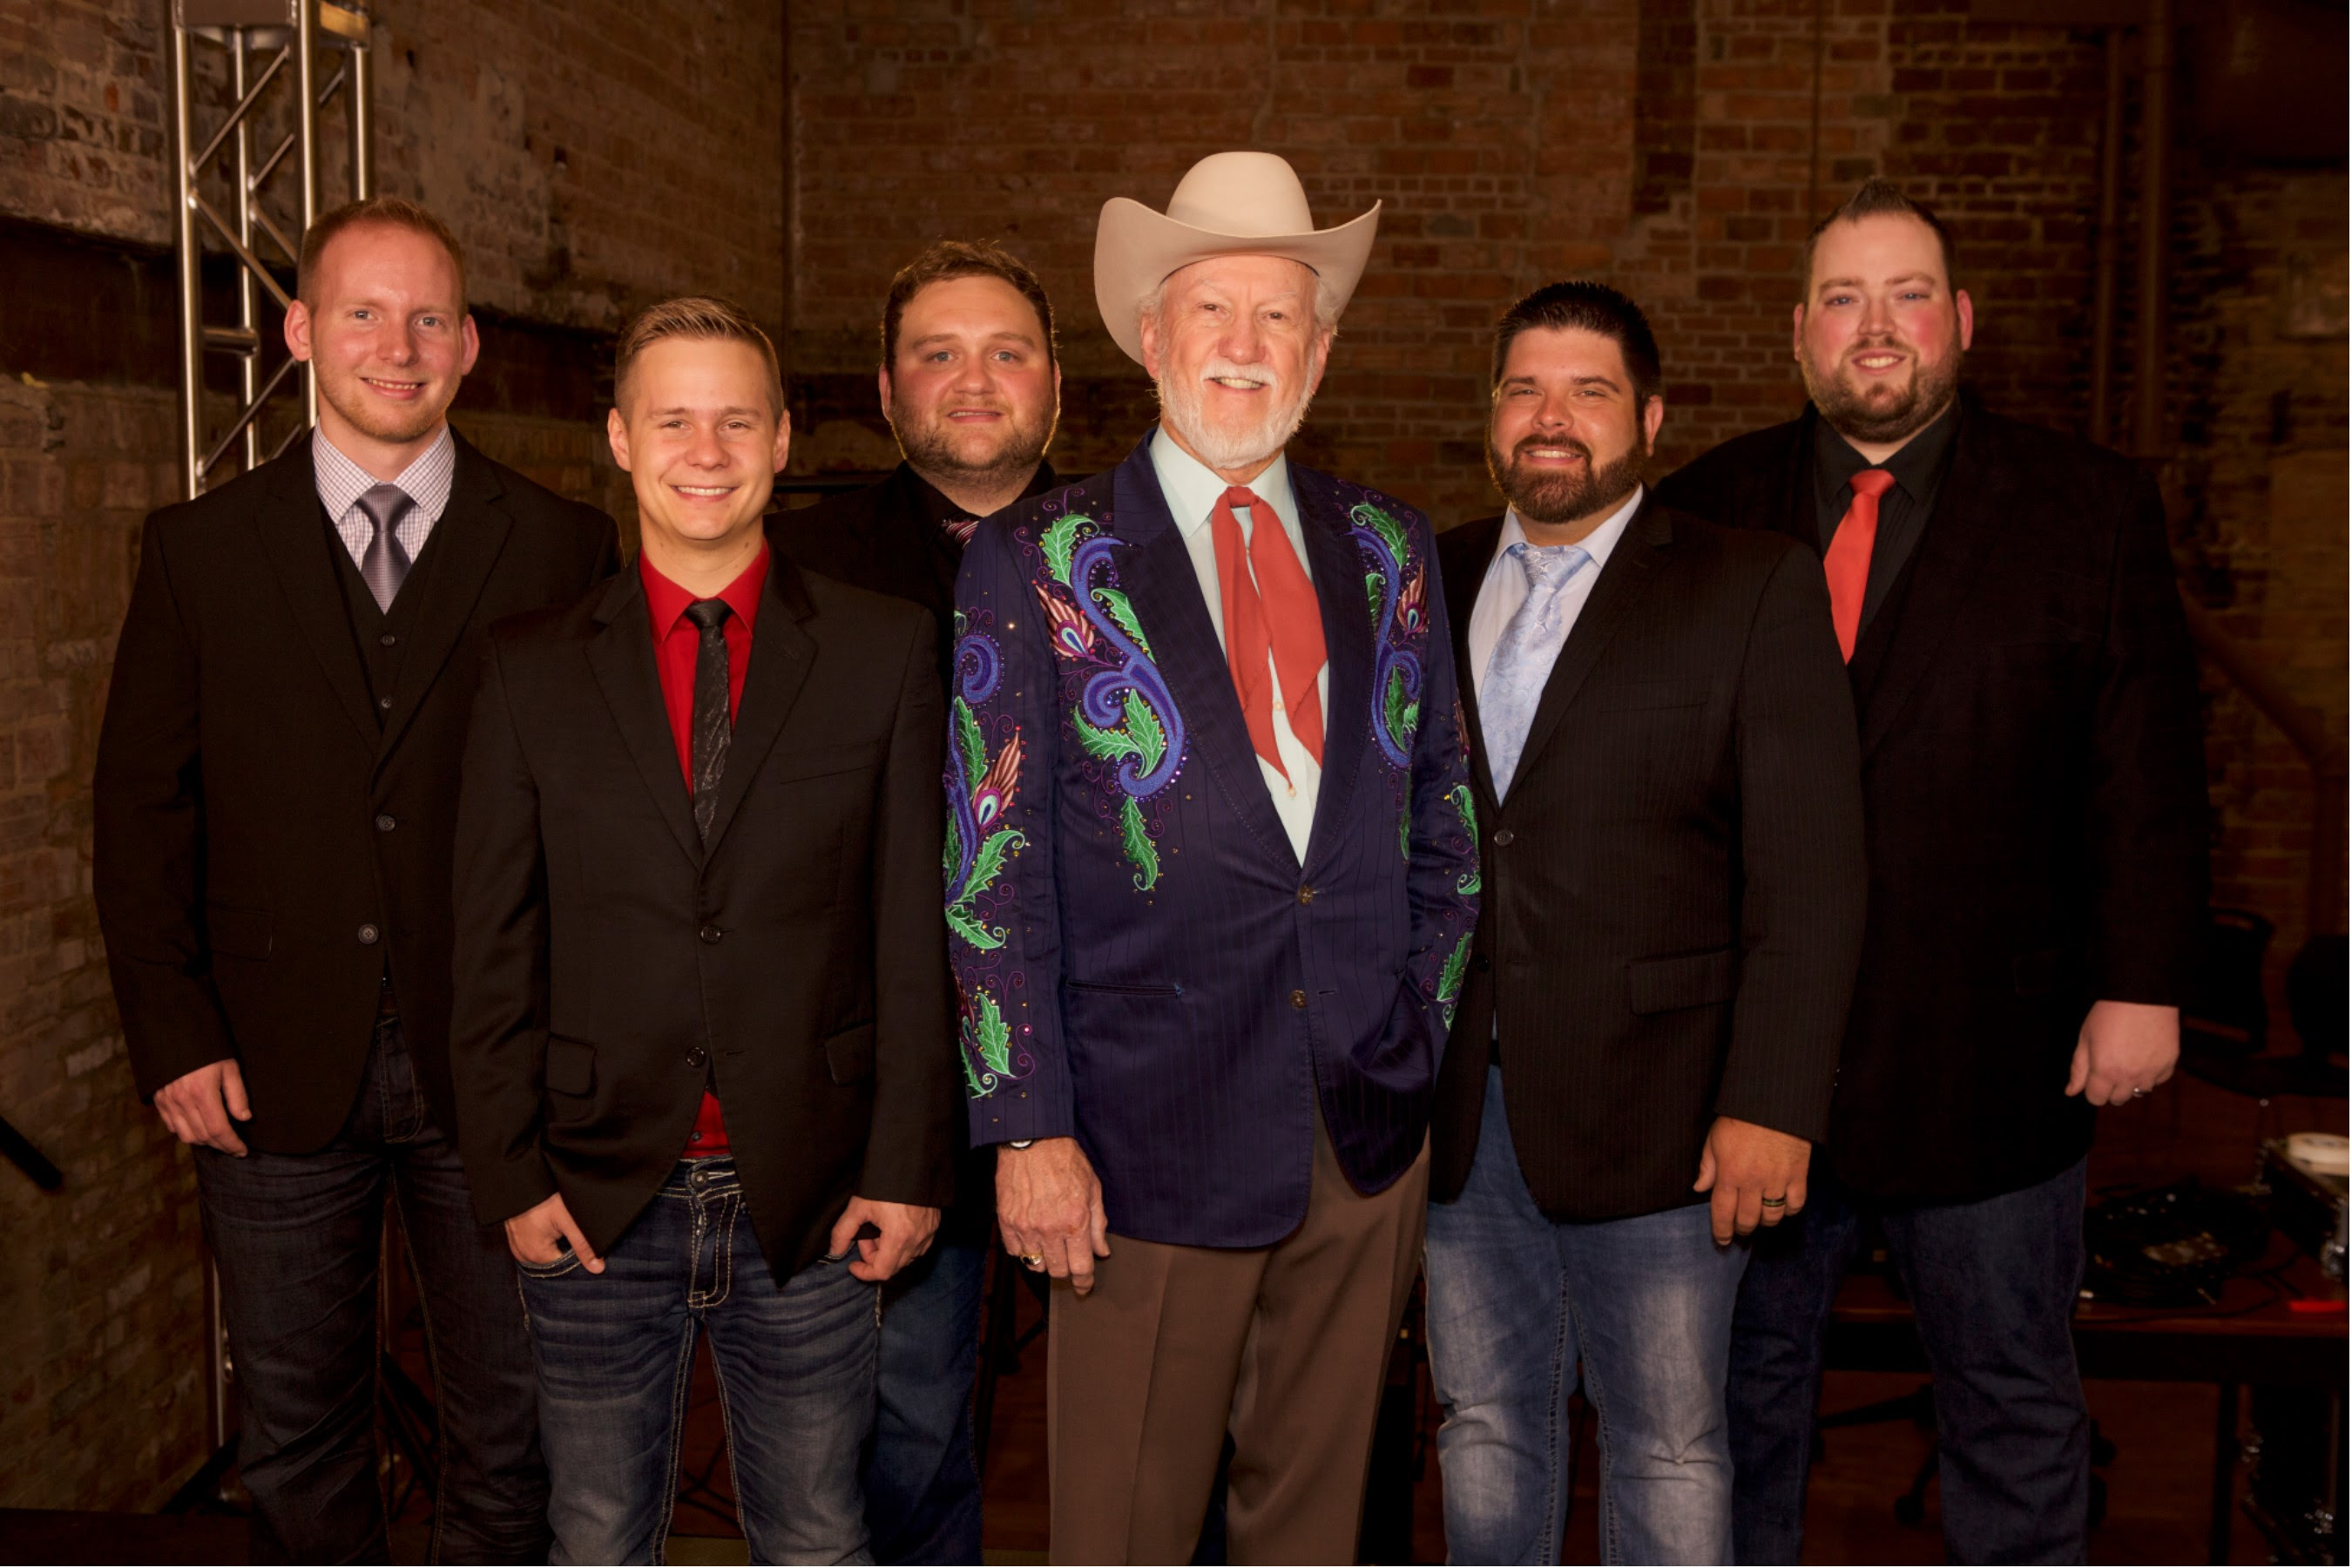 Bluegrass and Gospel Master Doyle Lawson comments on new album, Burden Bearer